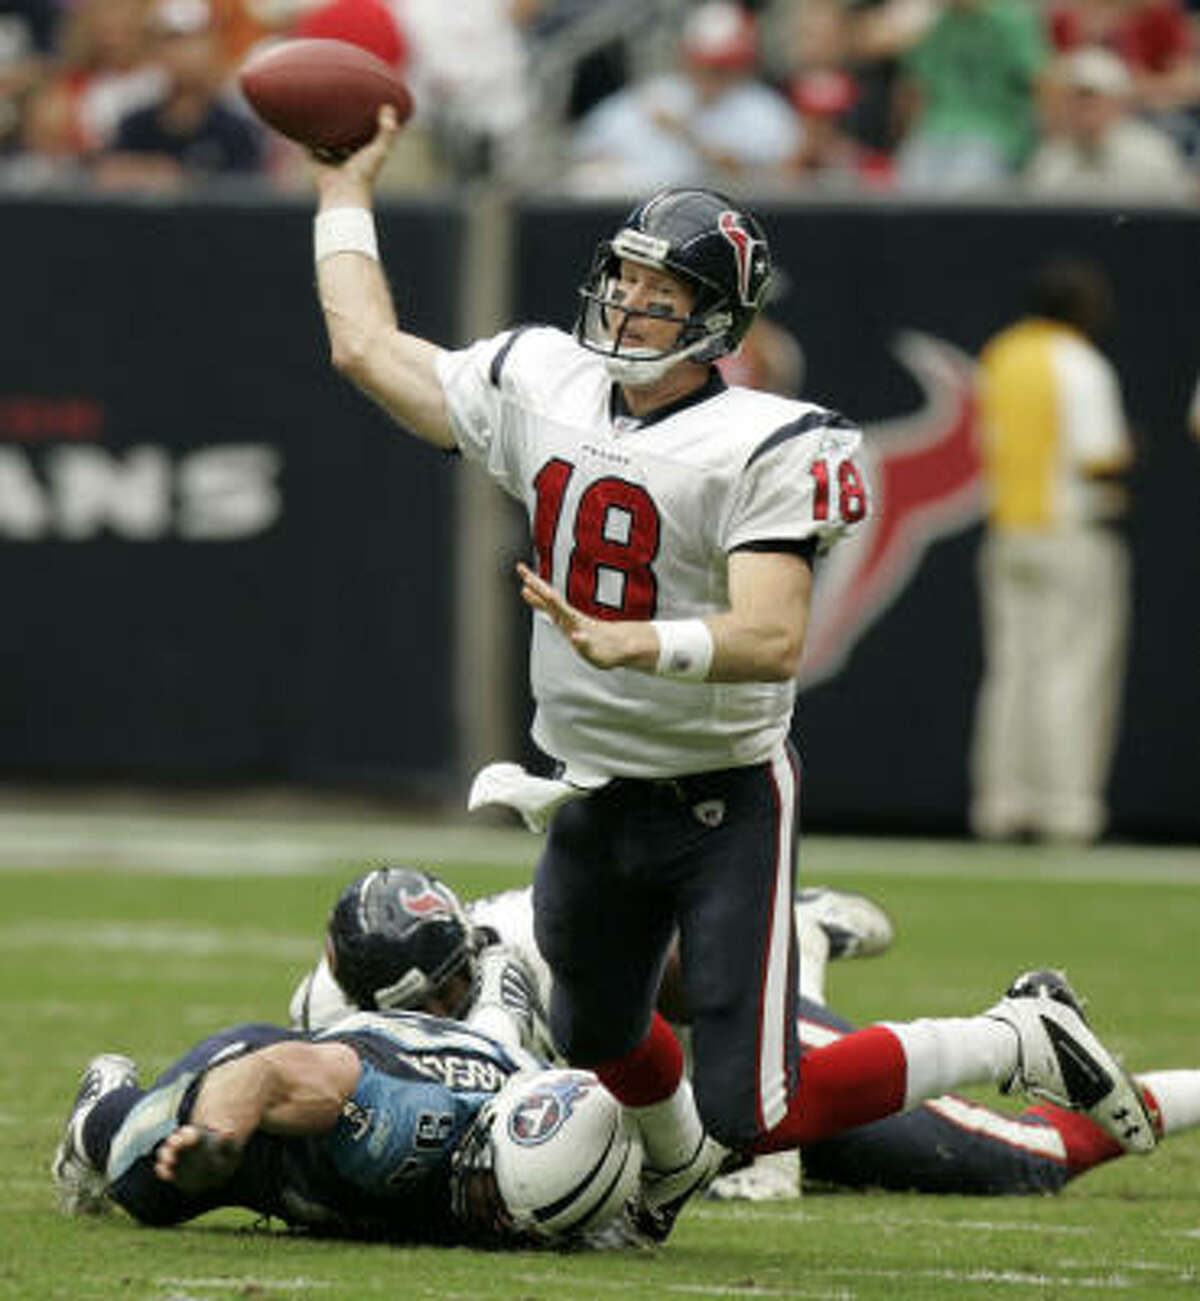 Oct. 21, 2007 | Texans vs. Titans: Texans backup QB Sage Rosenfels replaced the injured Matt Schaub (ankle) in the first quarter and led a Texans' rally, tying an NFL record with four TD passes in the fourth quarter. Rosenfels finished 22-of-35 for 290 yards, with four touchdowns and three interceptions and the Texans lost 38-36.